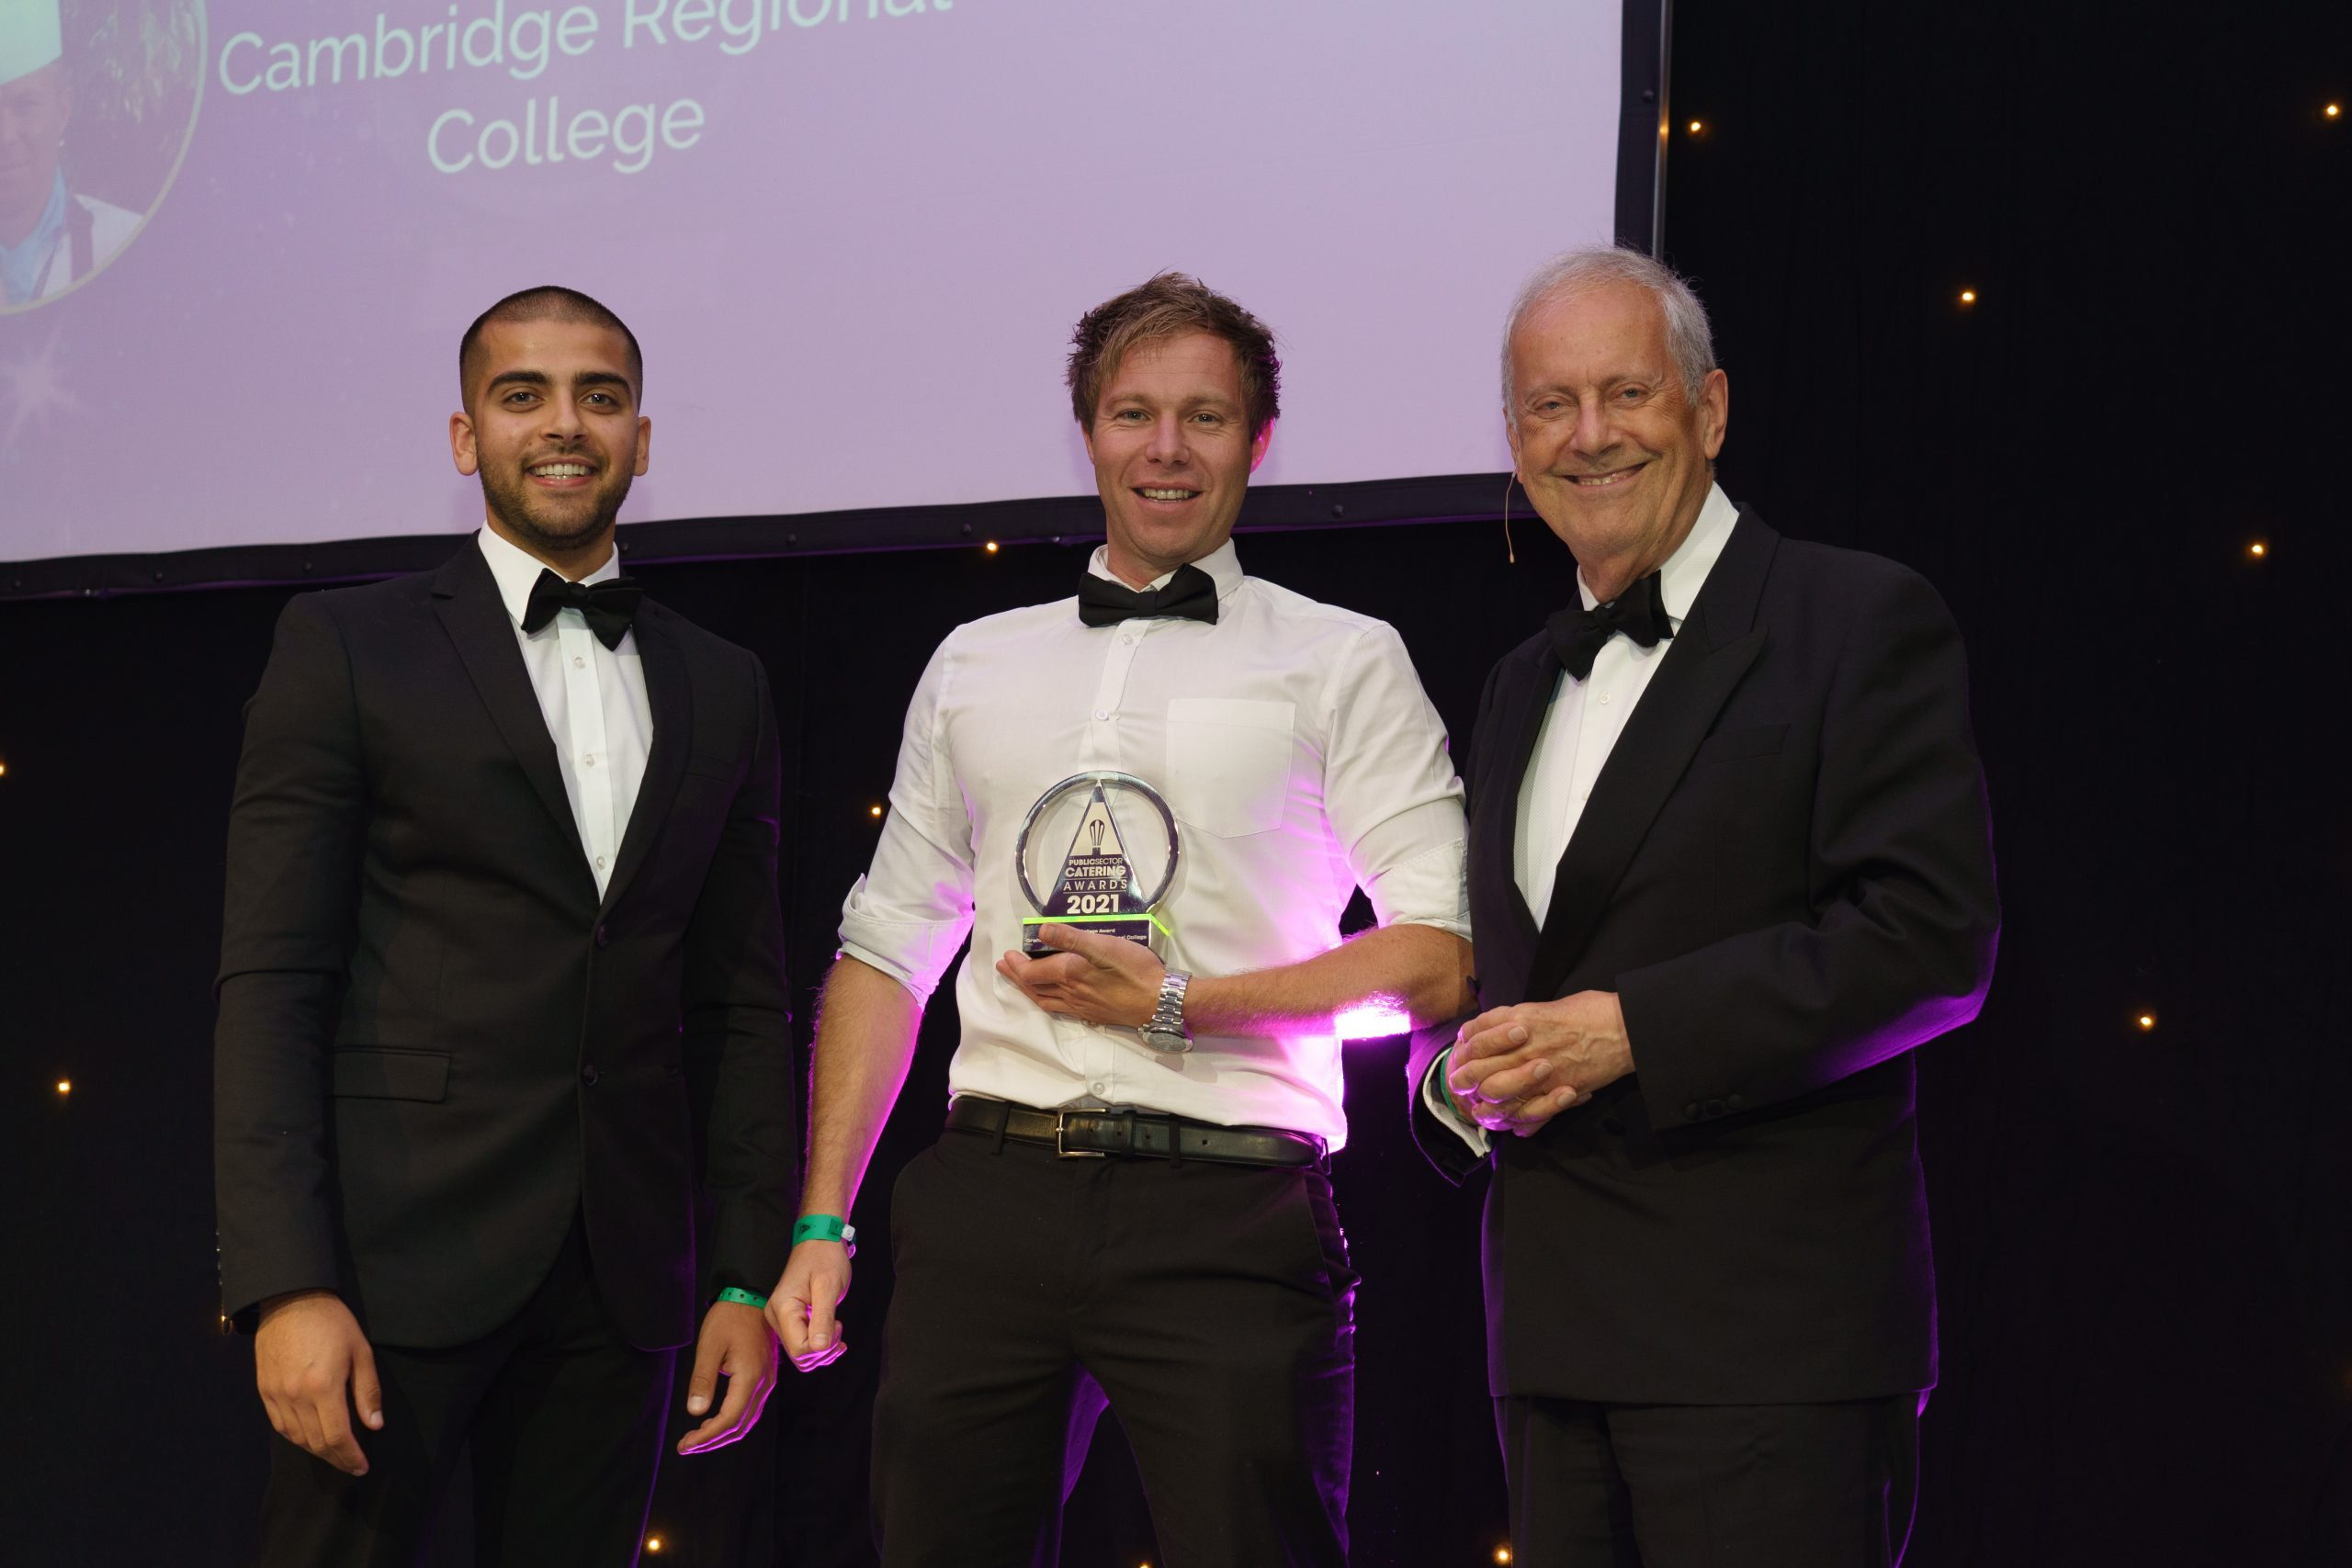 CRC awarded Catering College of the Year